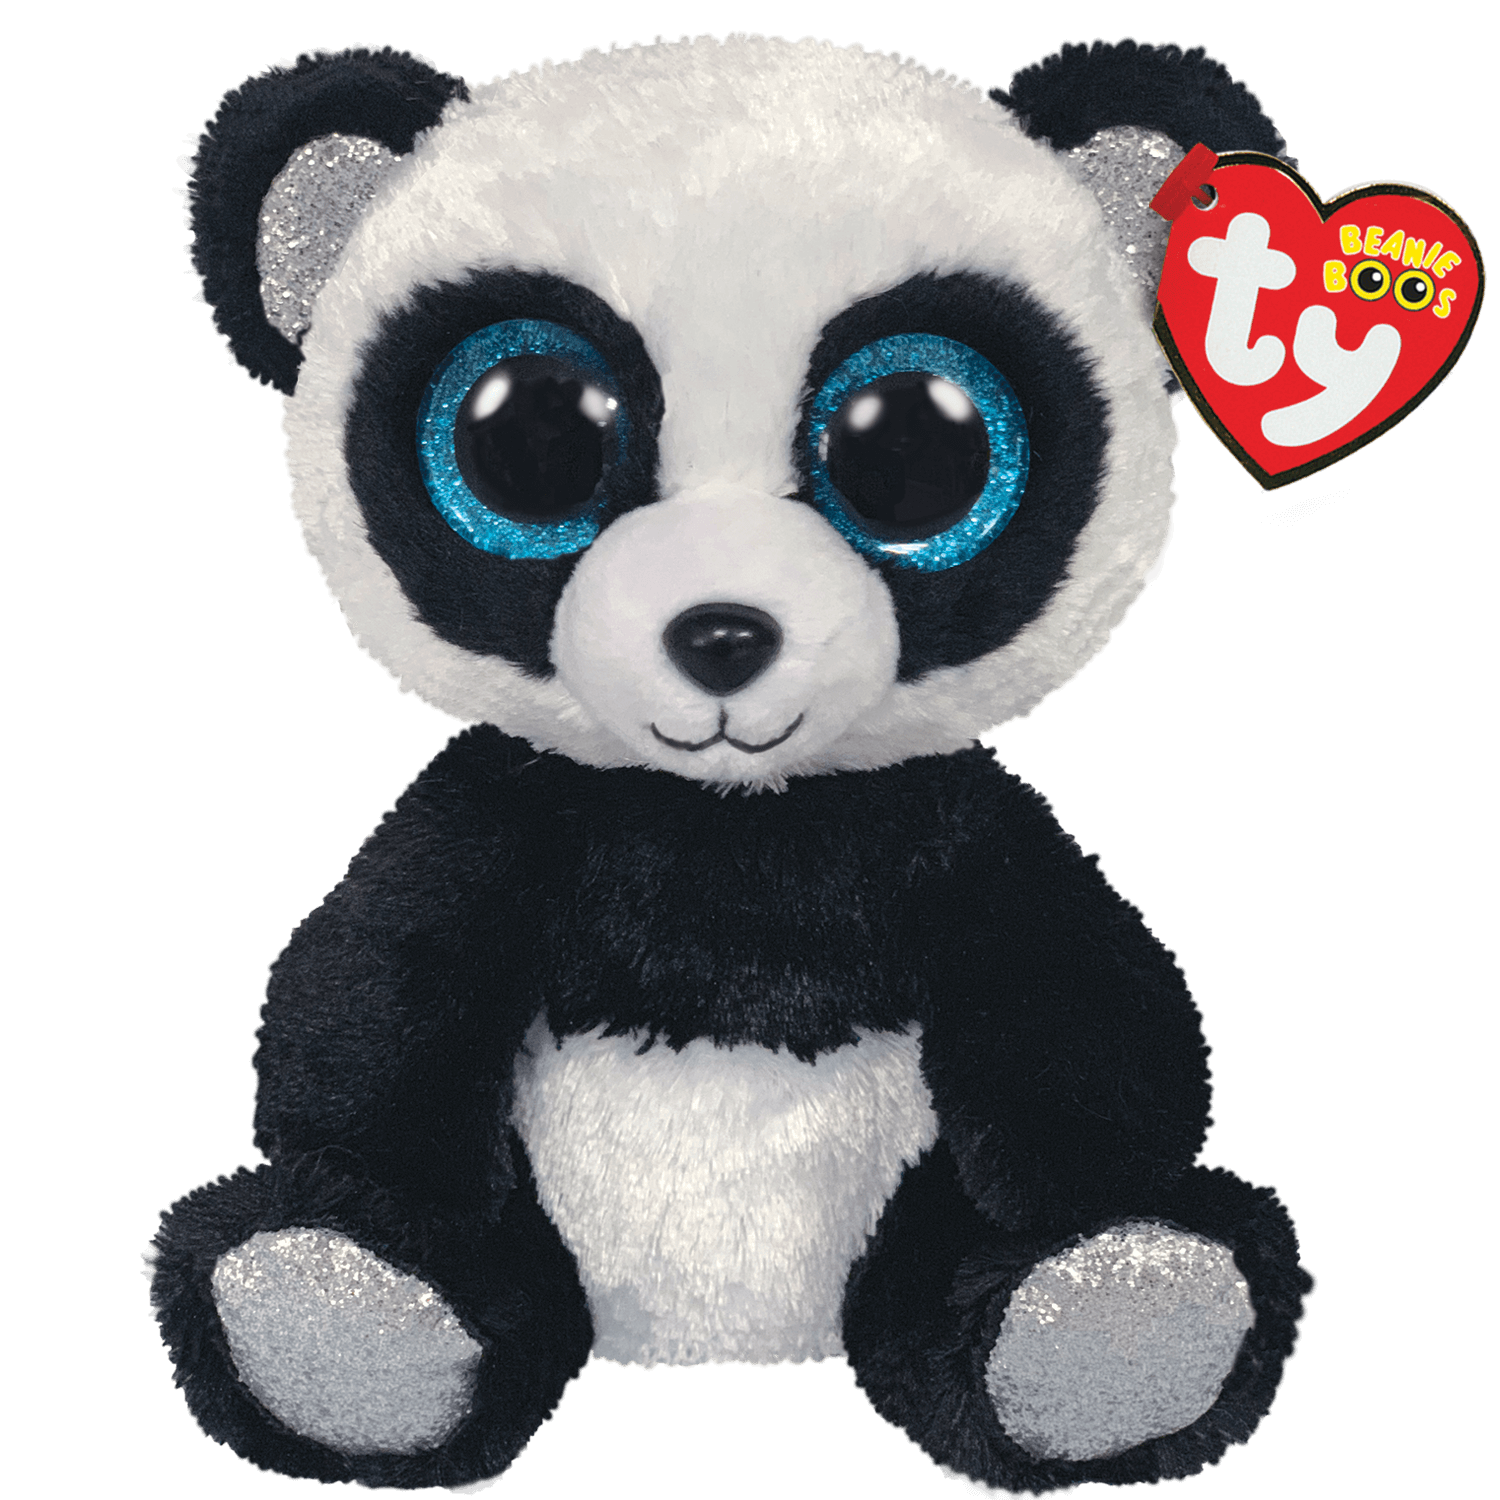 Bamboo - Black And White Panda